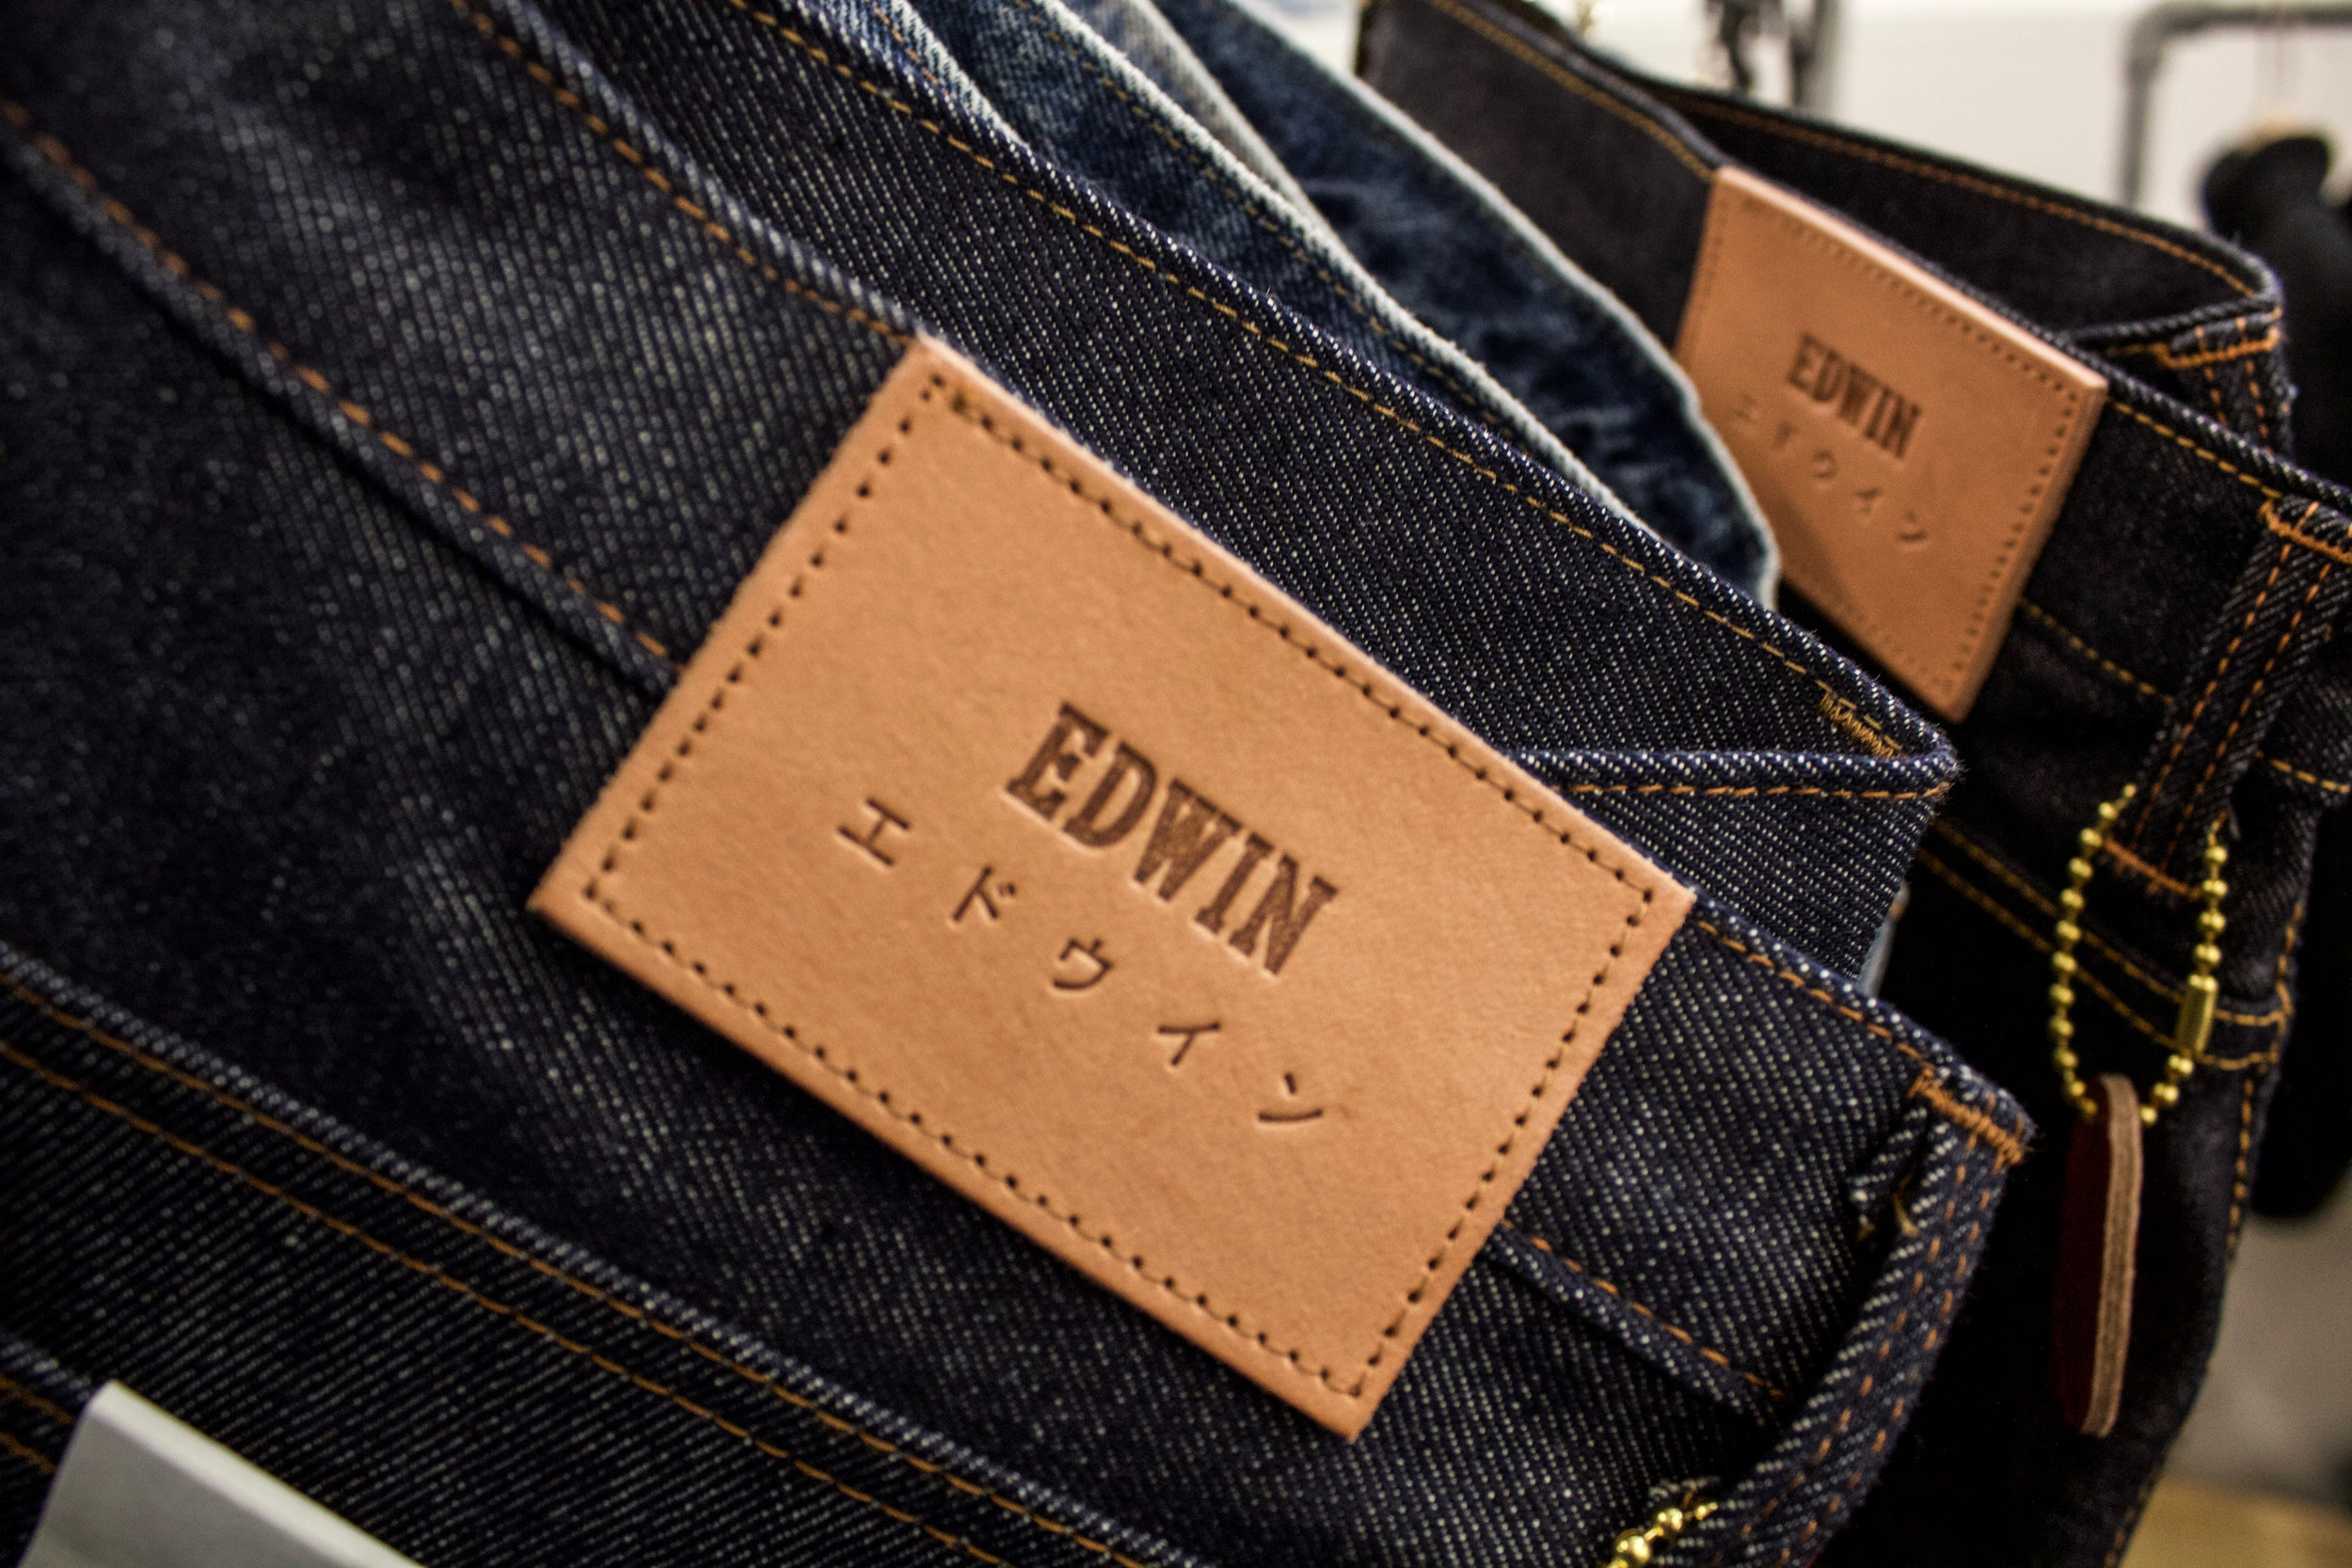 3e845a609525 Edwin are pushing a new selvedge denim release for AW19, deepening the  visuals on their leather logo patches. I love the corduroy shirts and  trousers ...